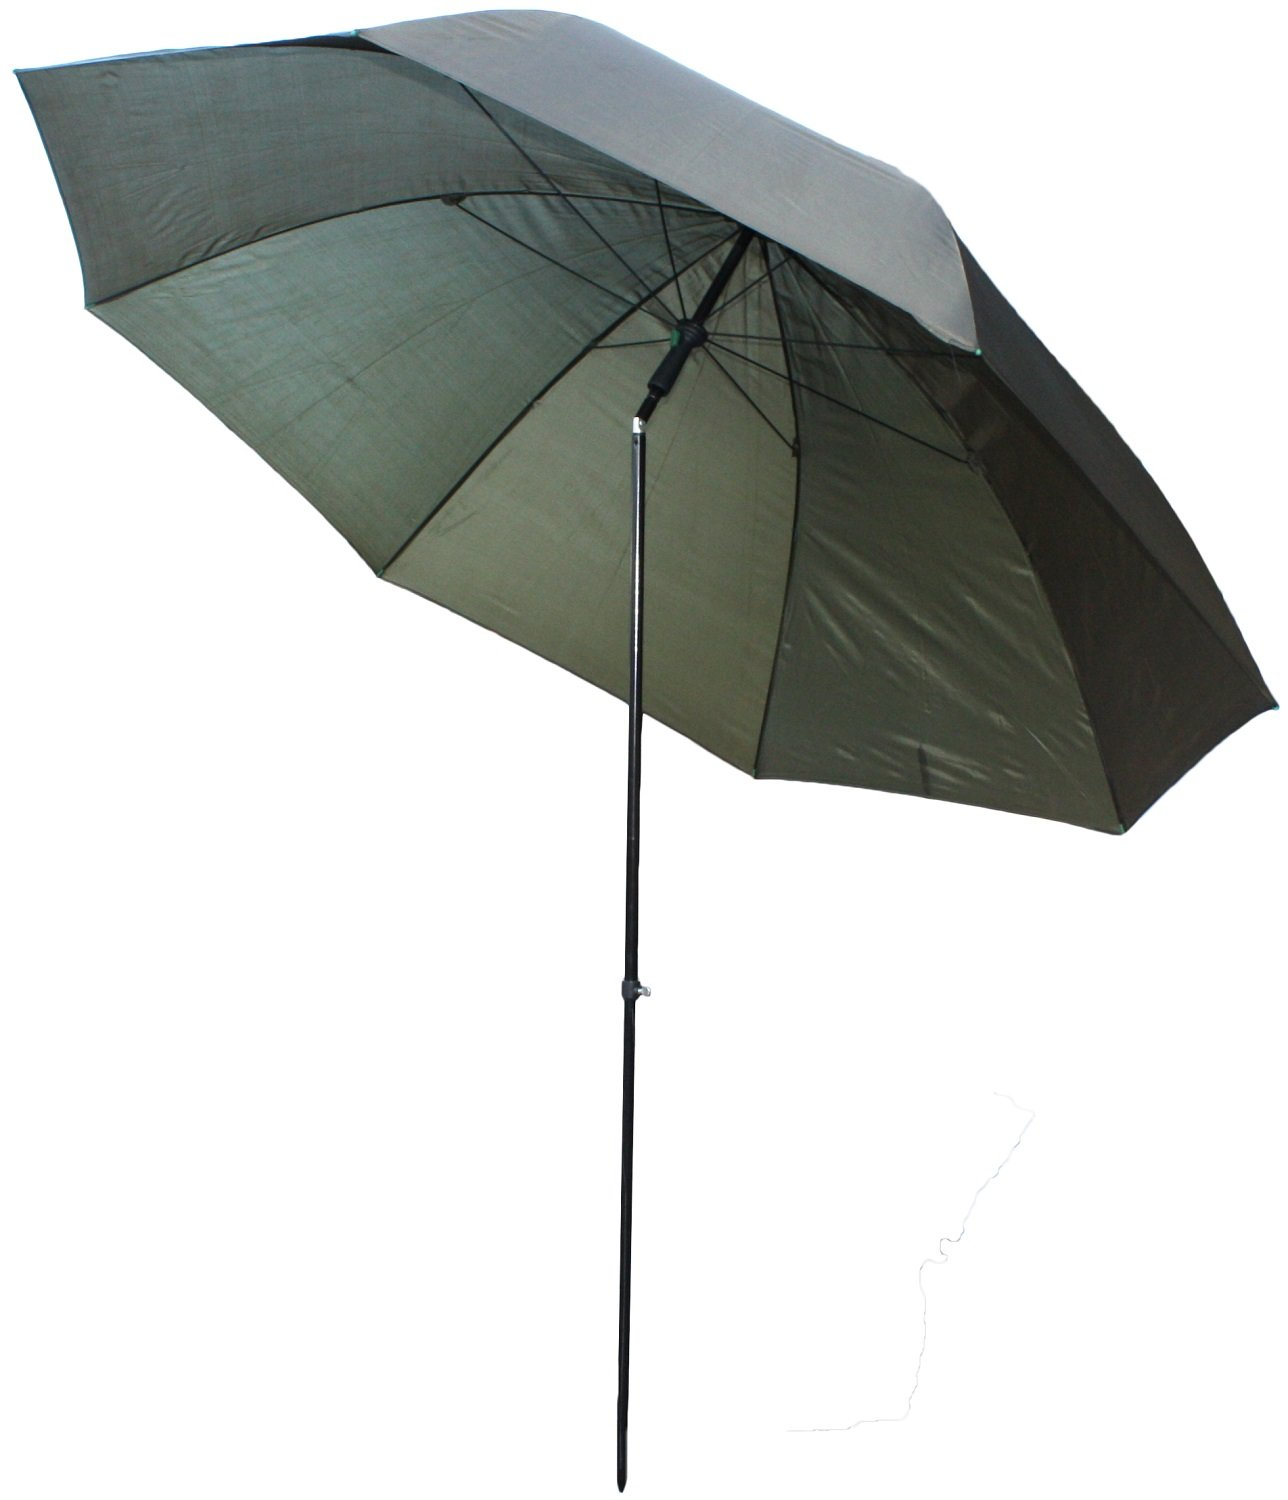 "Michigan Fishing Umbrella with Top Tilt and Sides Brolly Shelter with FREE Carry Bag, Olive Green, 50"", 60"", 75"" or 86"""